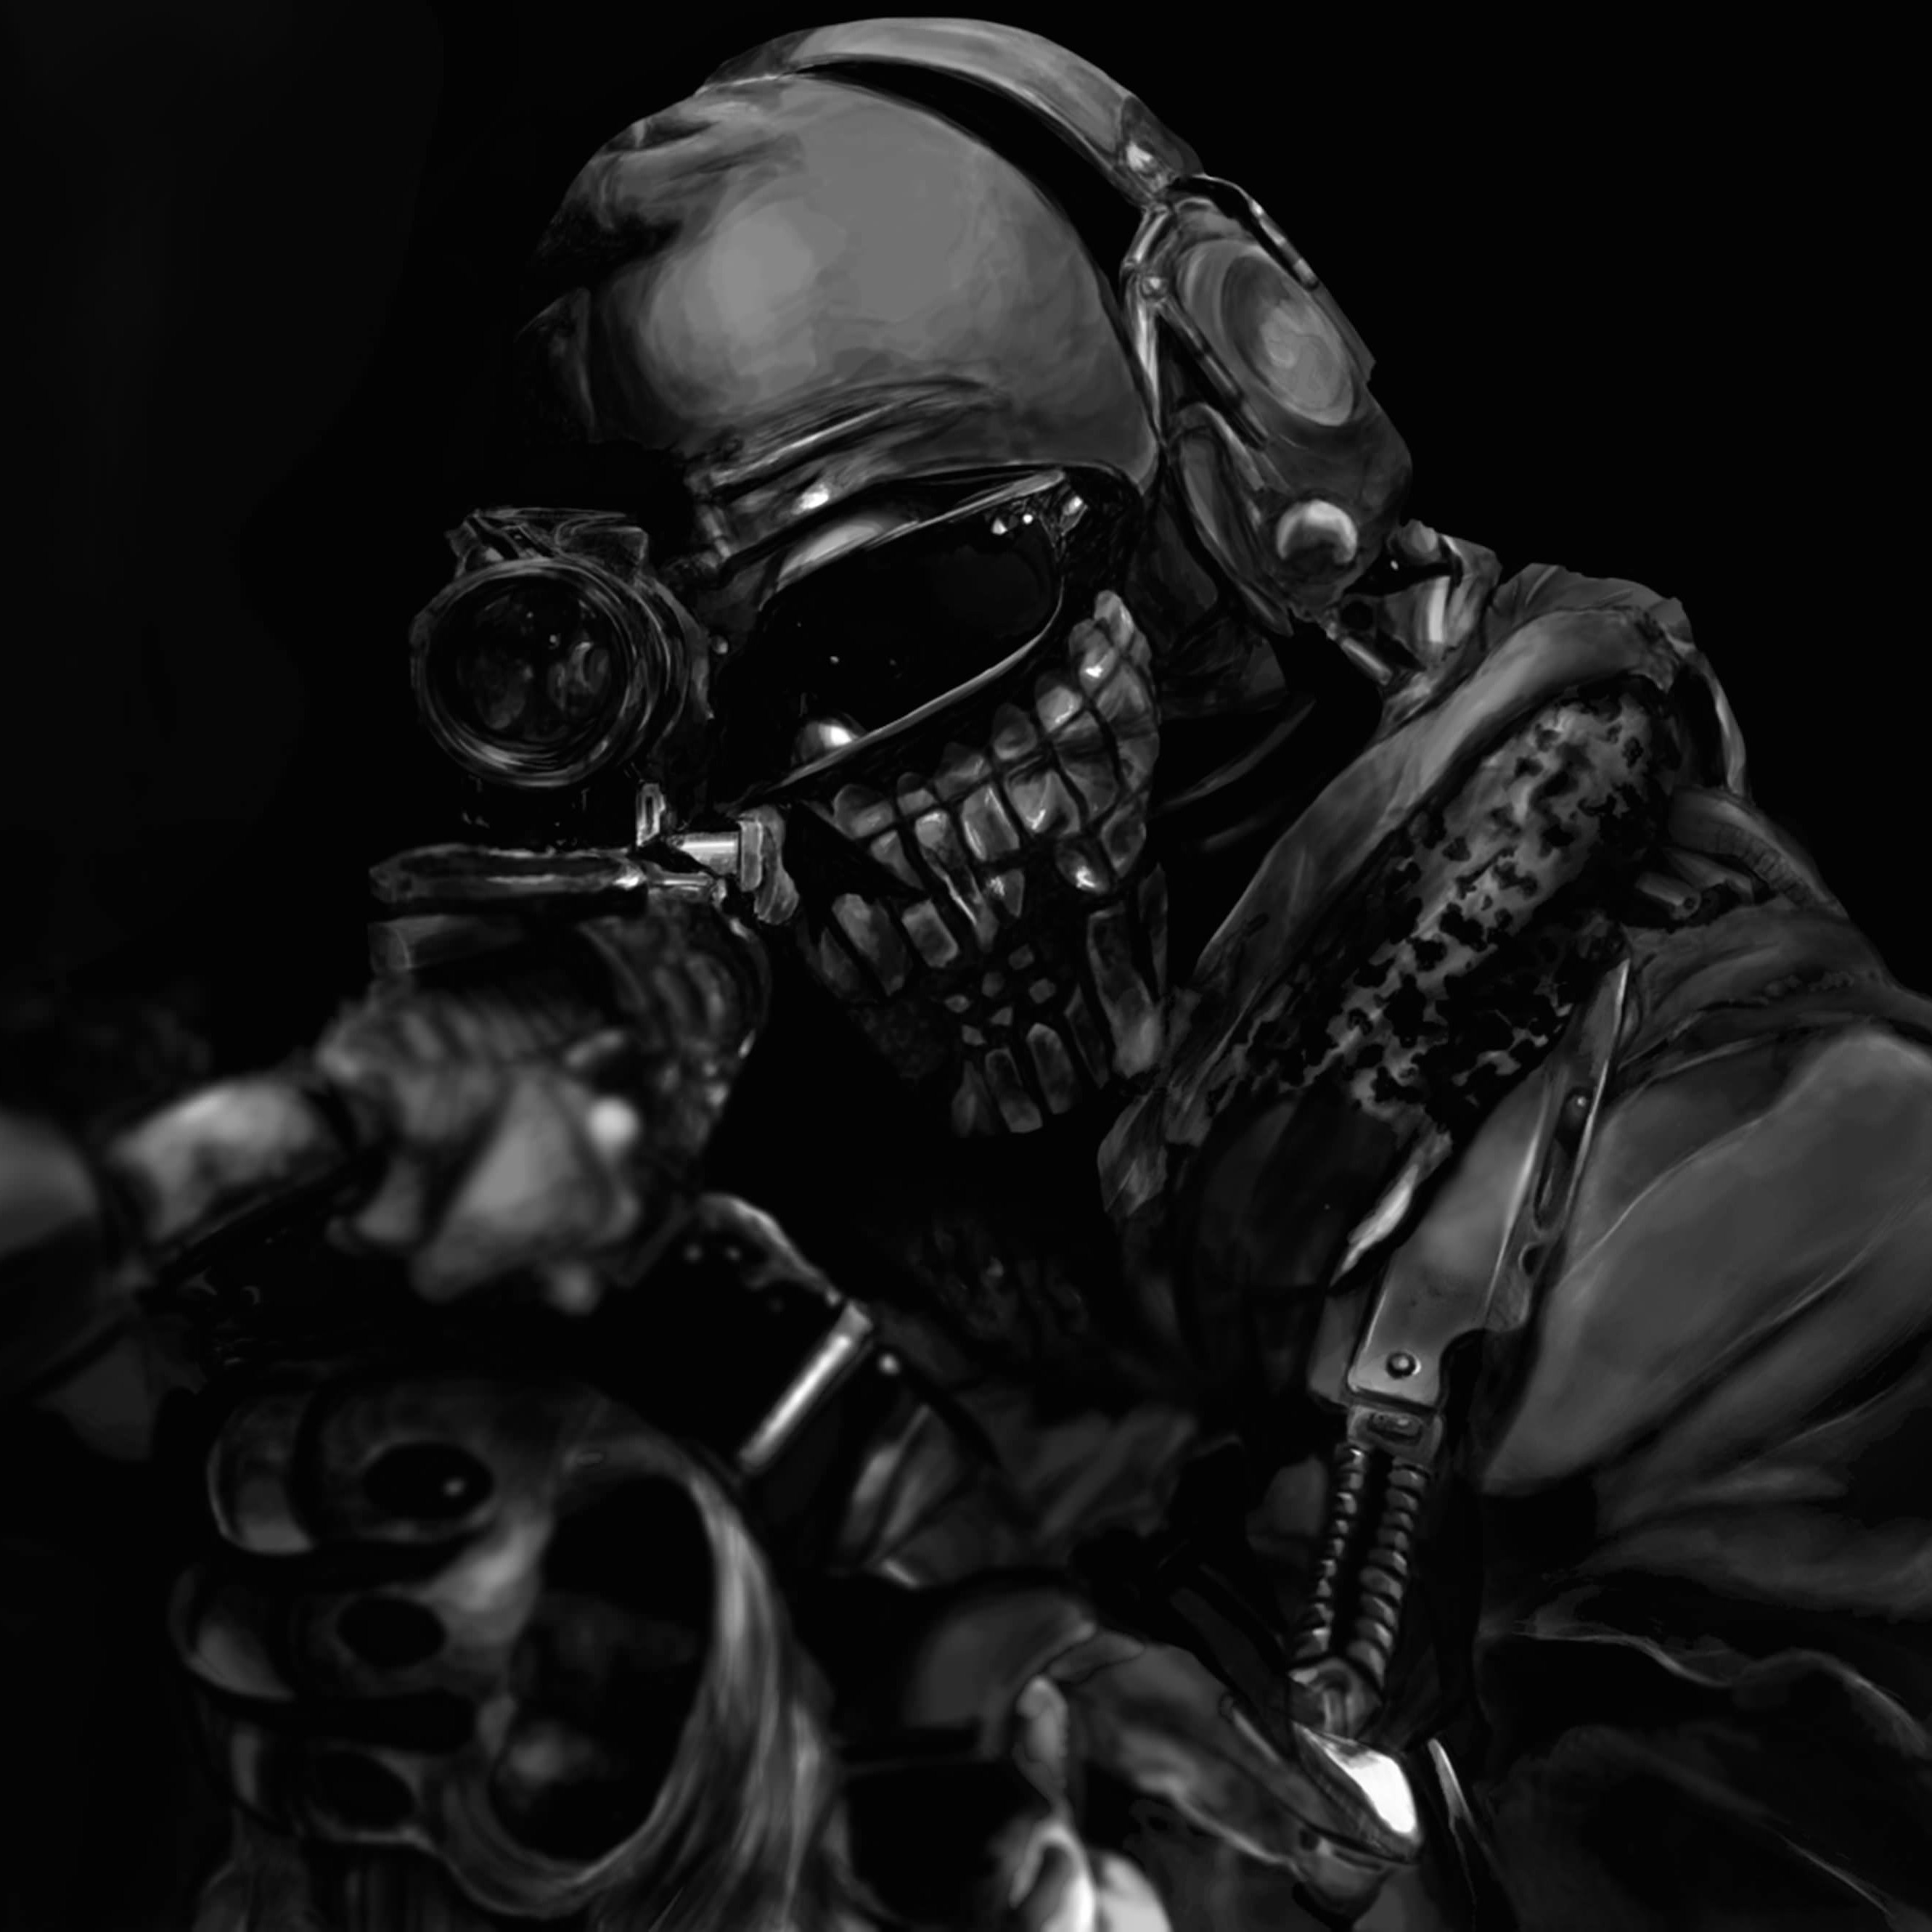 Call of Duty Ghost Masked Warrior Wallpaper for Apple iPhone 6 Plus